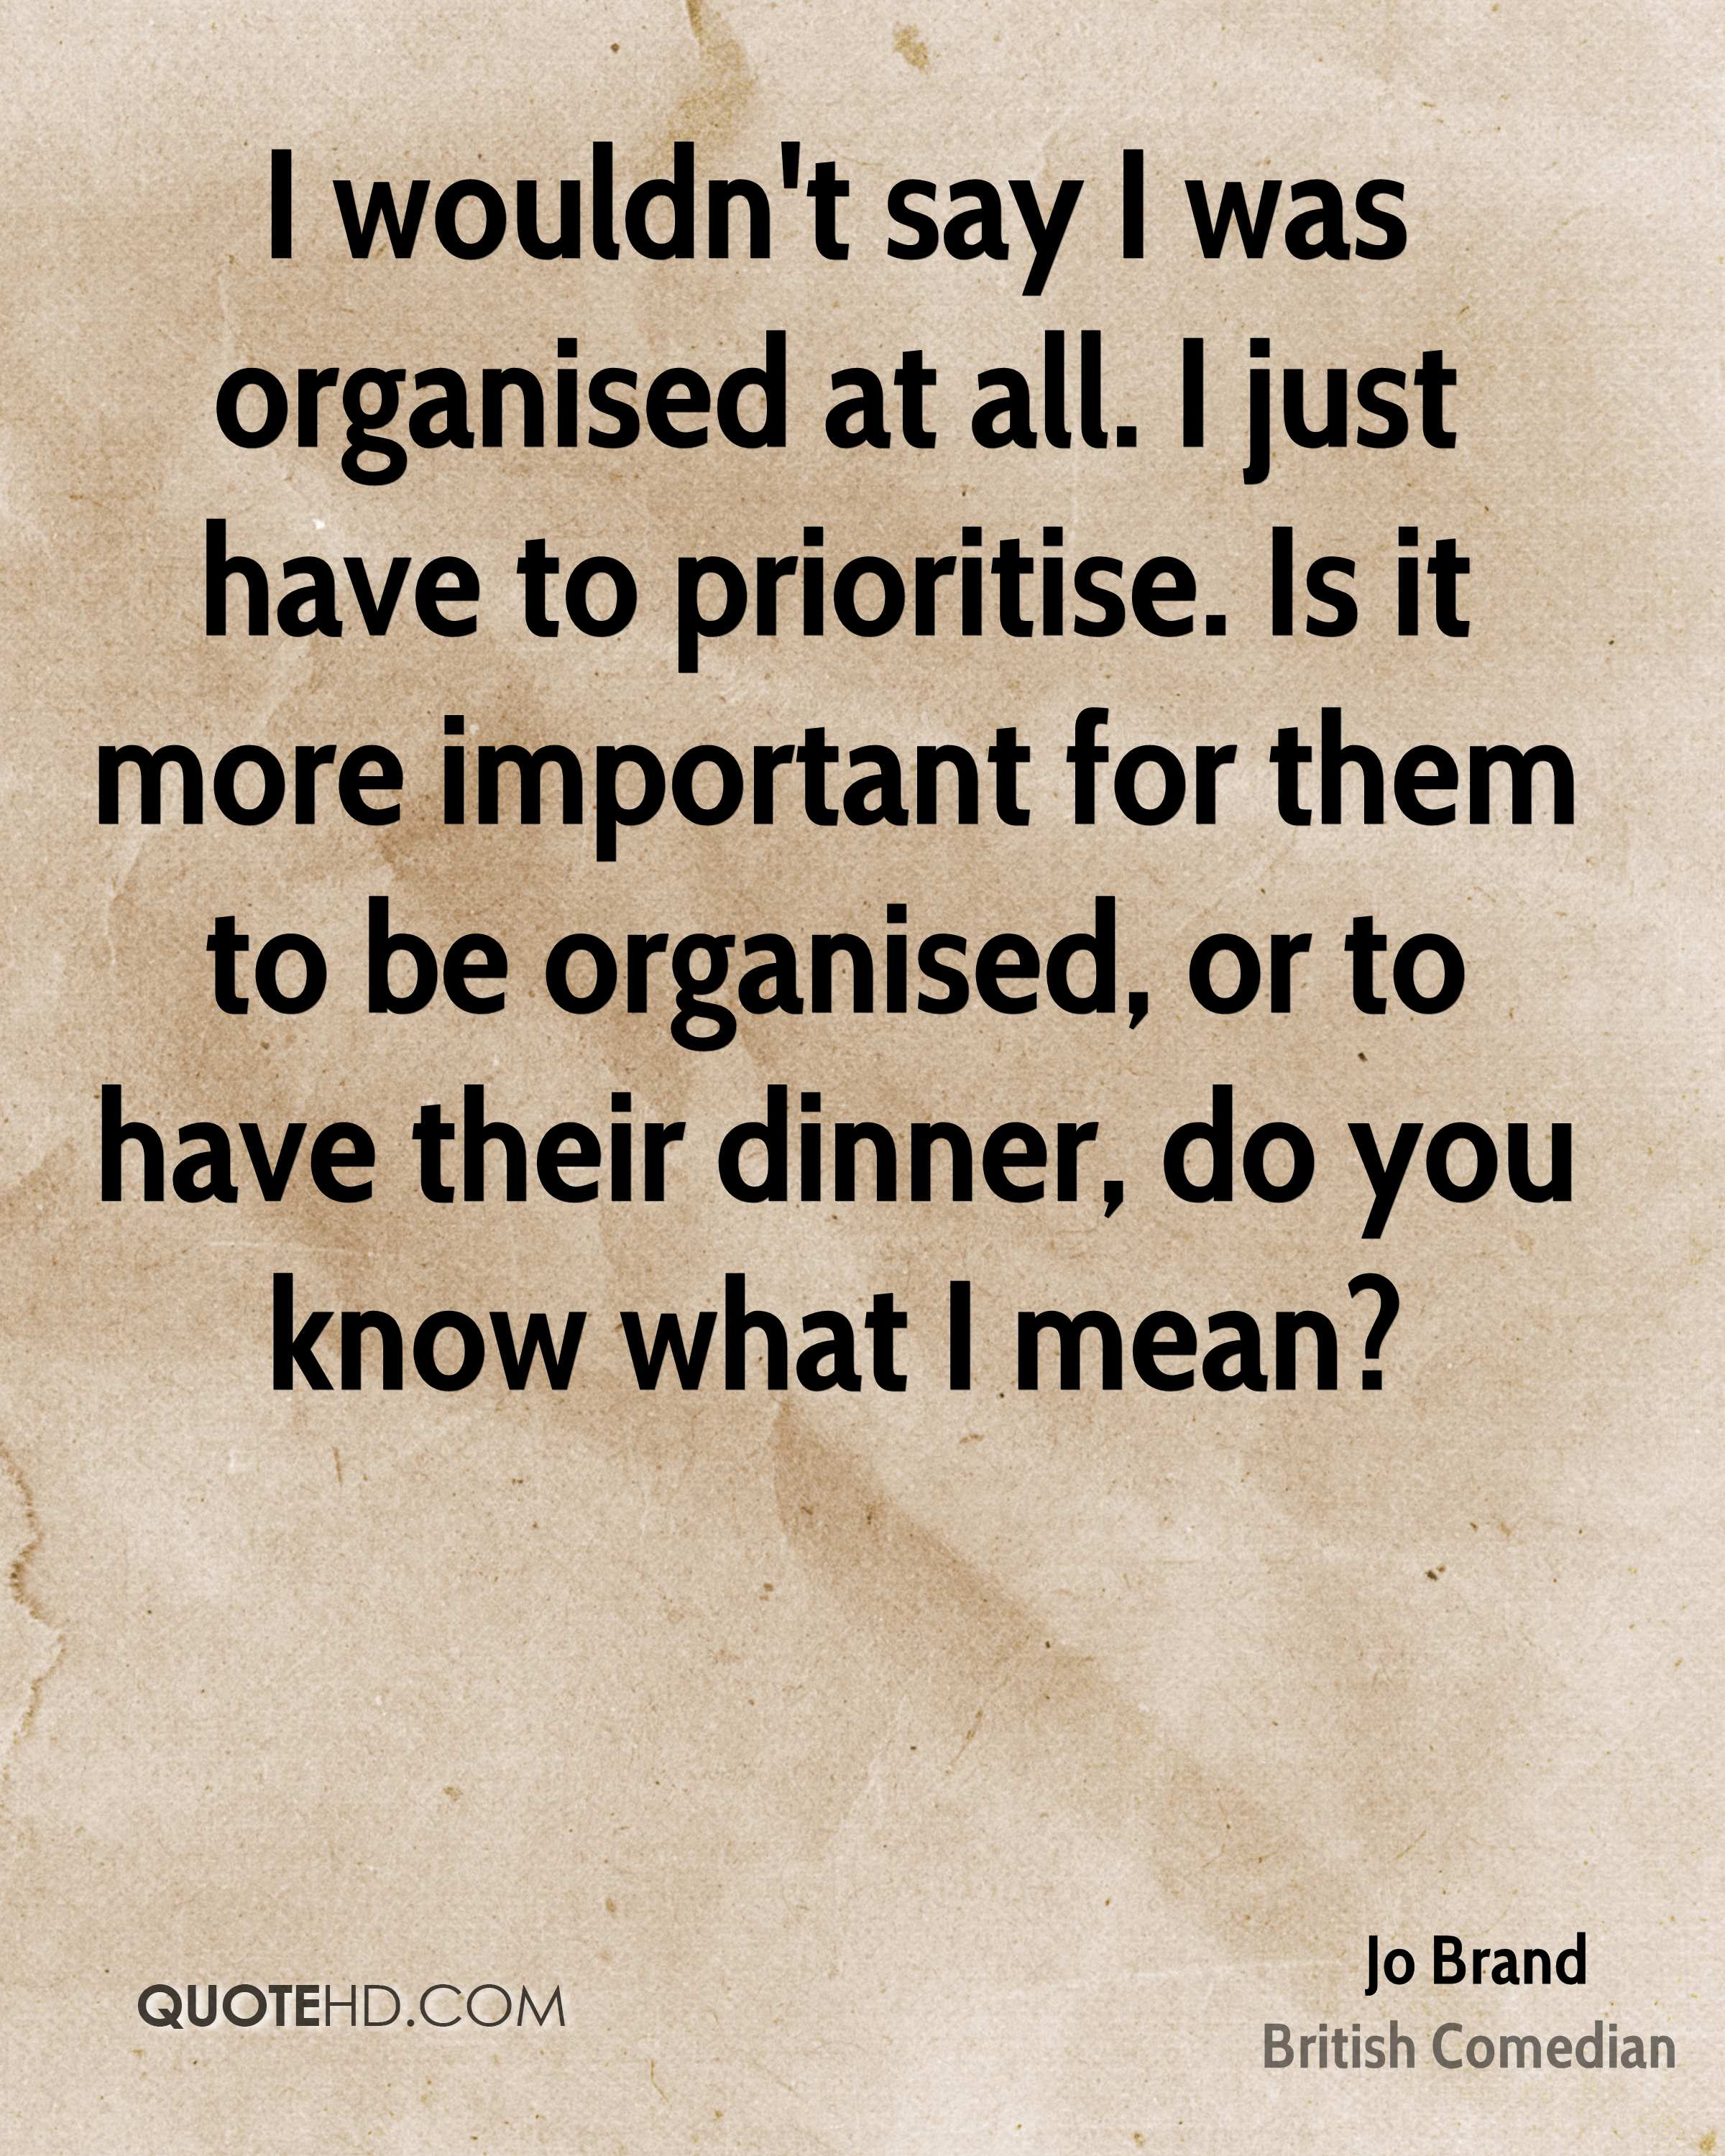 I wouldn't say I was organised at all. I just have to prioritise. Is it more important for them to be organised, or to have their dinner, do you know what I mean?